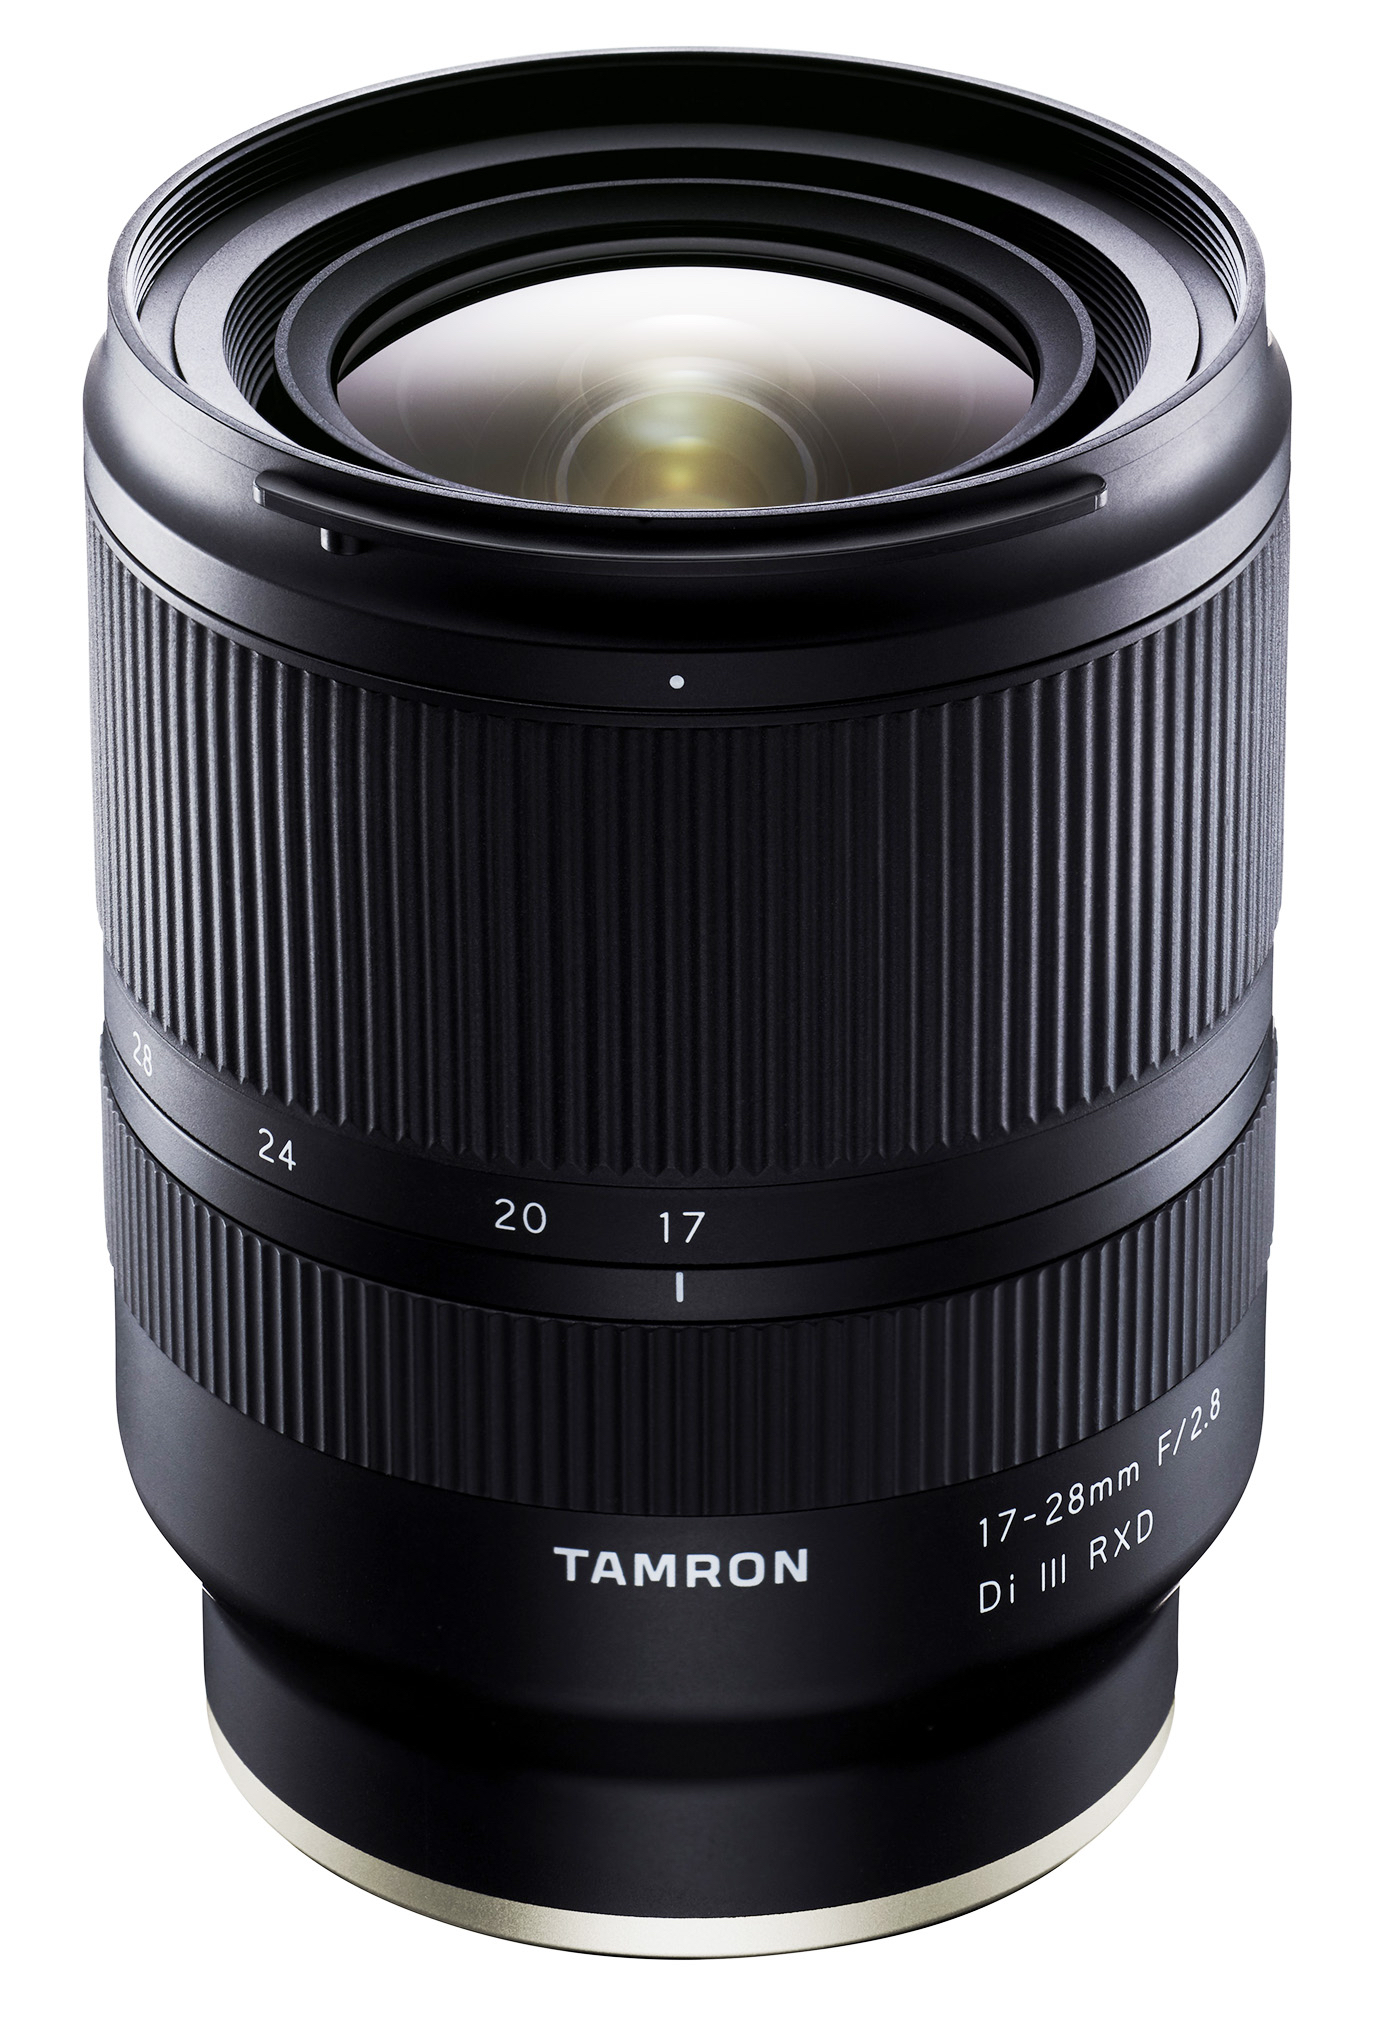 Full details of Tamron's fast wide-angle zoom